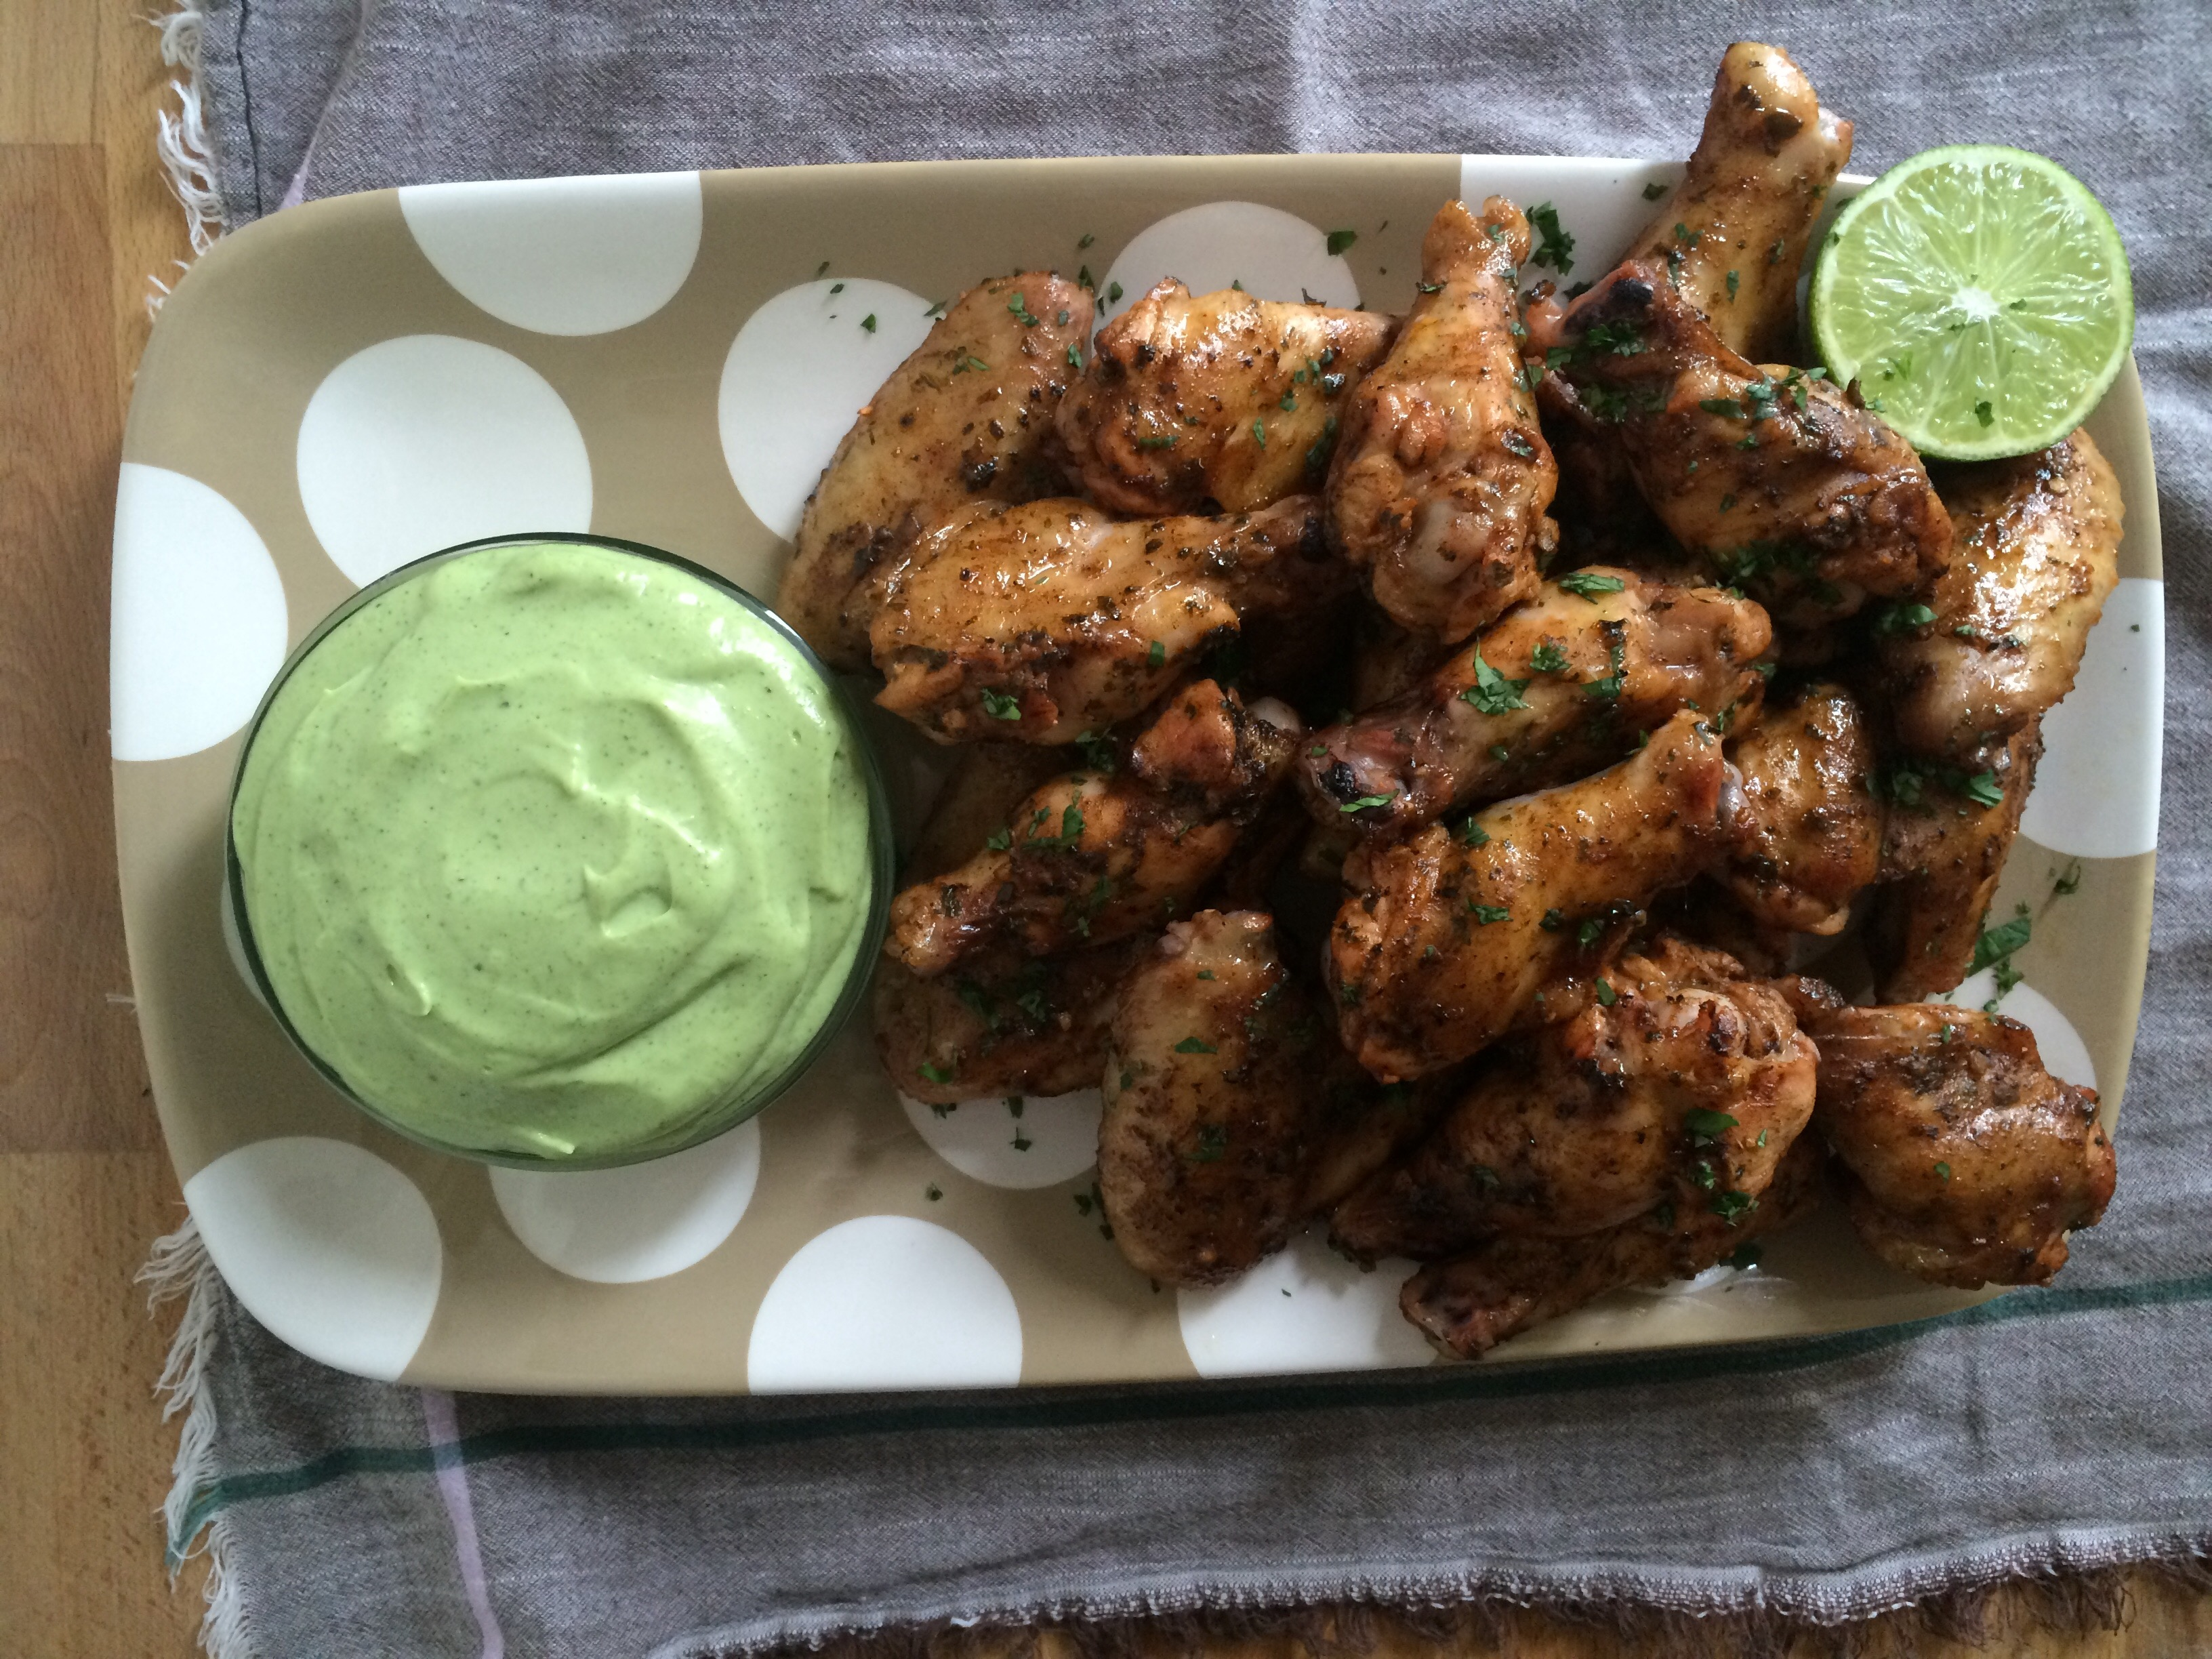 Tequila Lime Margarita Chicken Wings And Southwestern Ranch Dipping Sauce